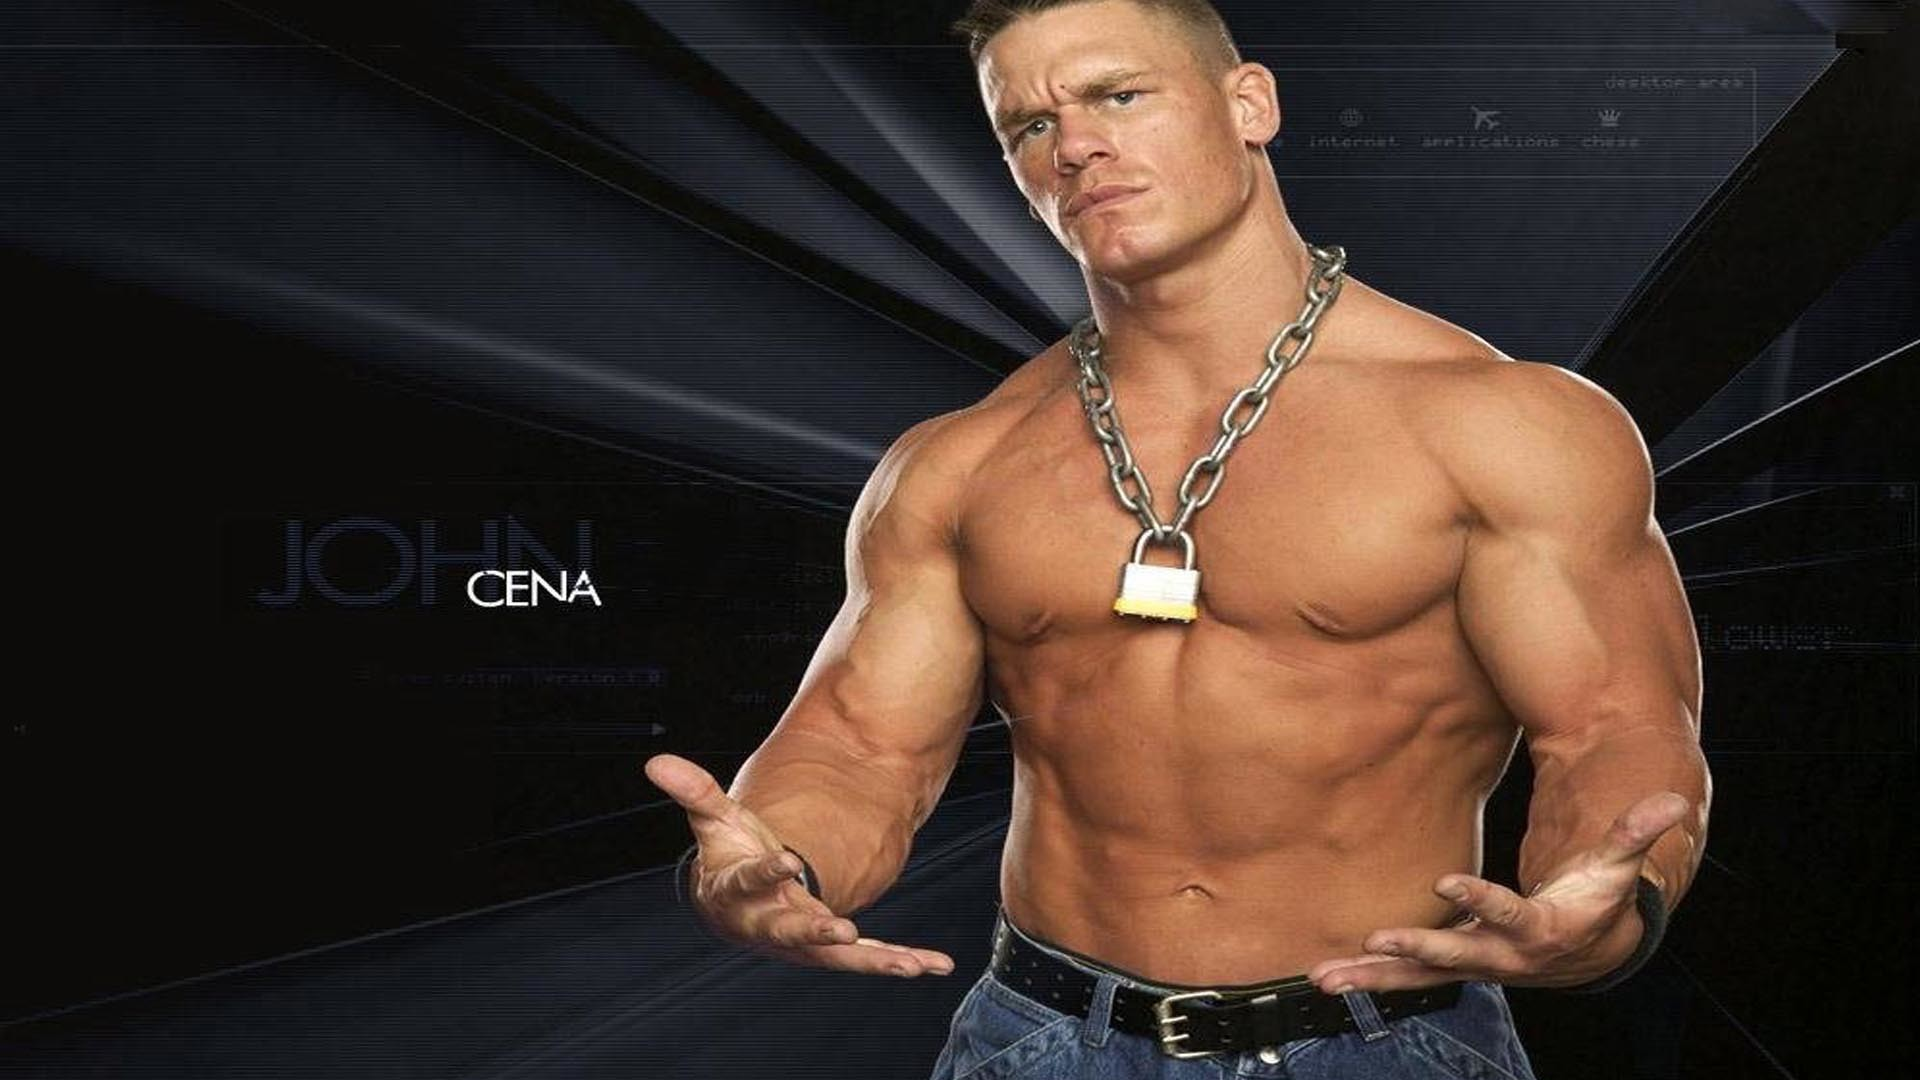 Wwe John Cena Wallpapers 2017 Hd 79 Background Pictures